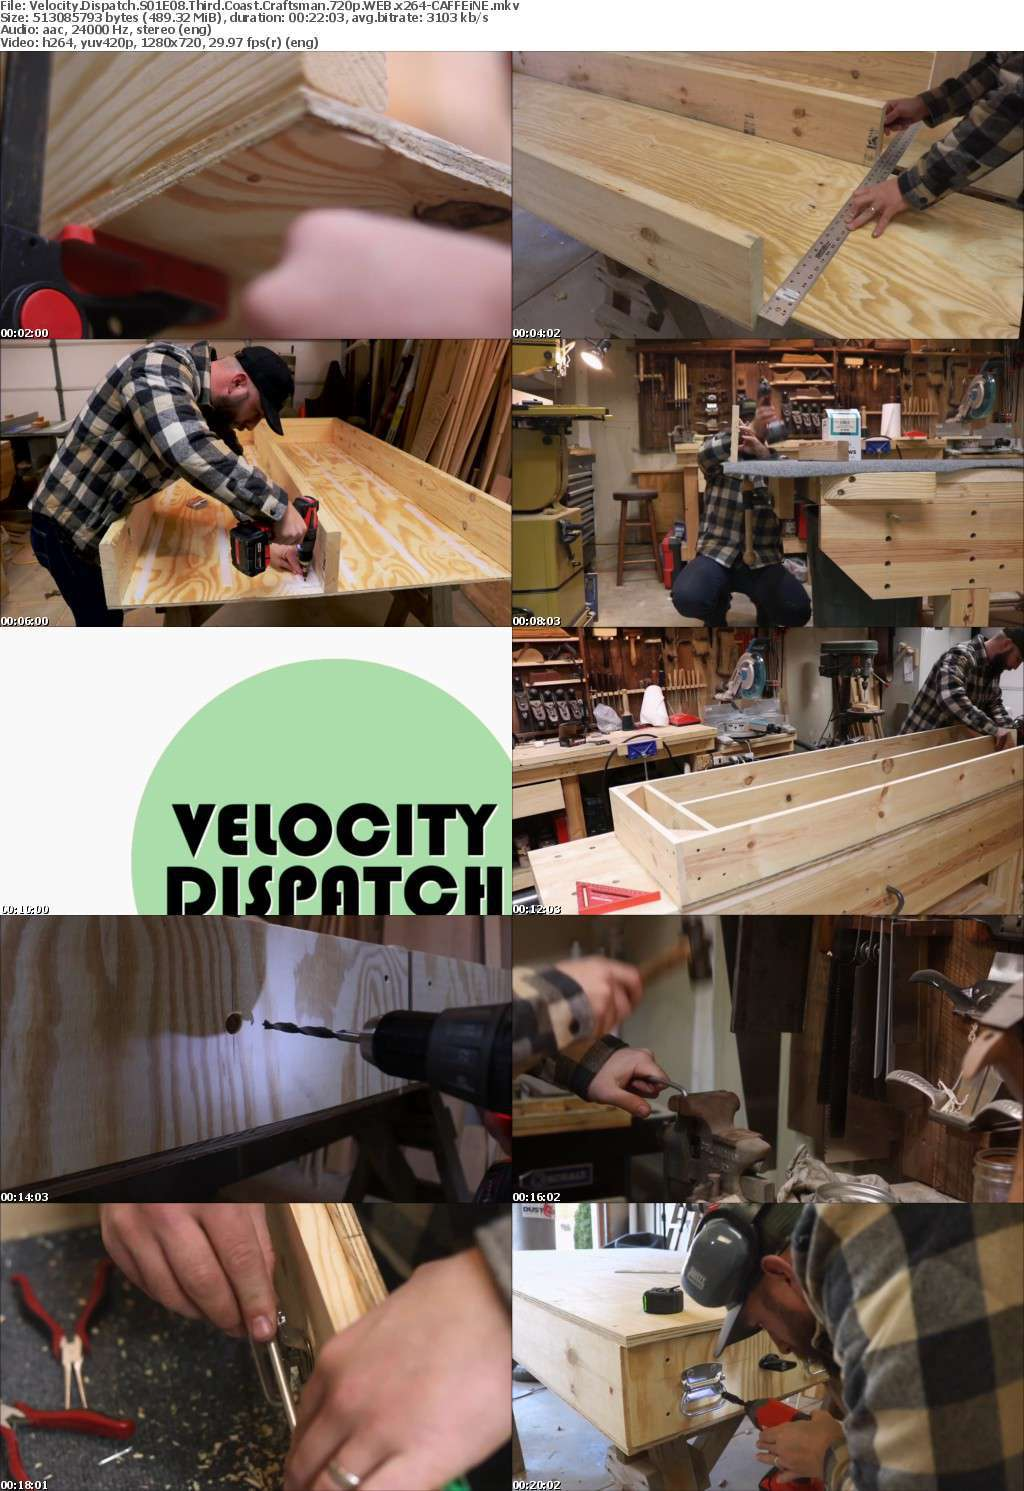 Velocity Dispatch S01E08 Third Coast Craftsman 720p WEB x264-CAFFEiNE